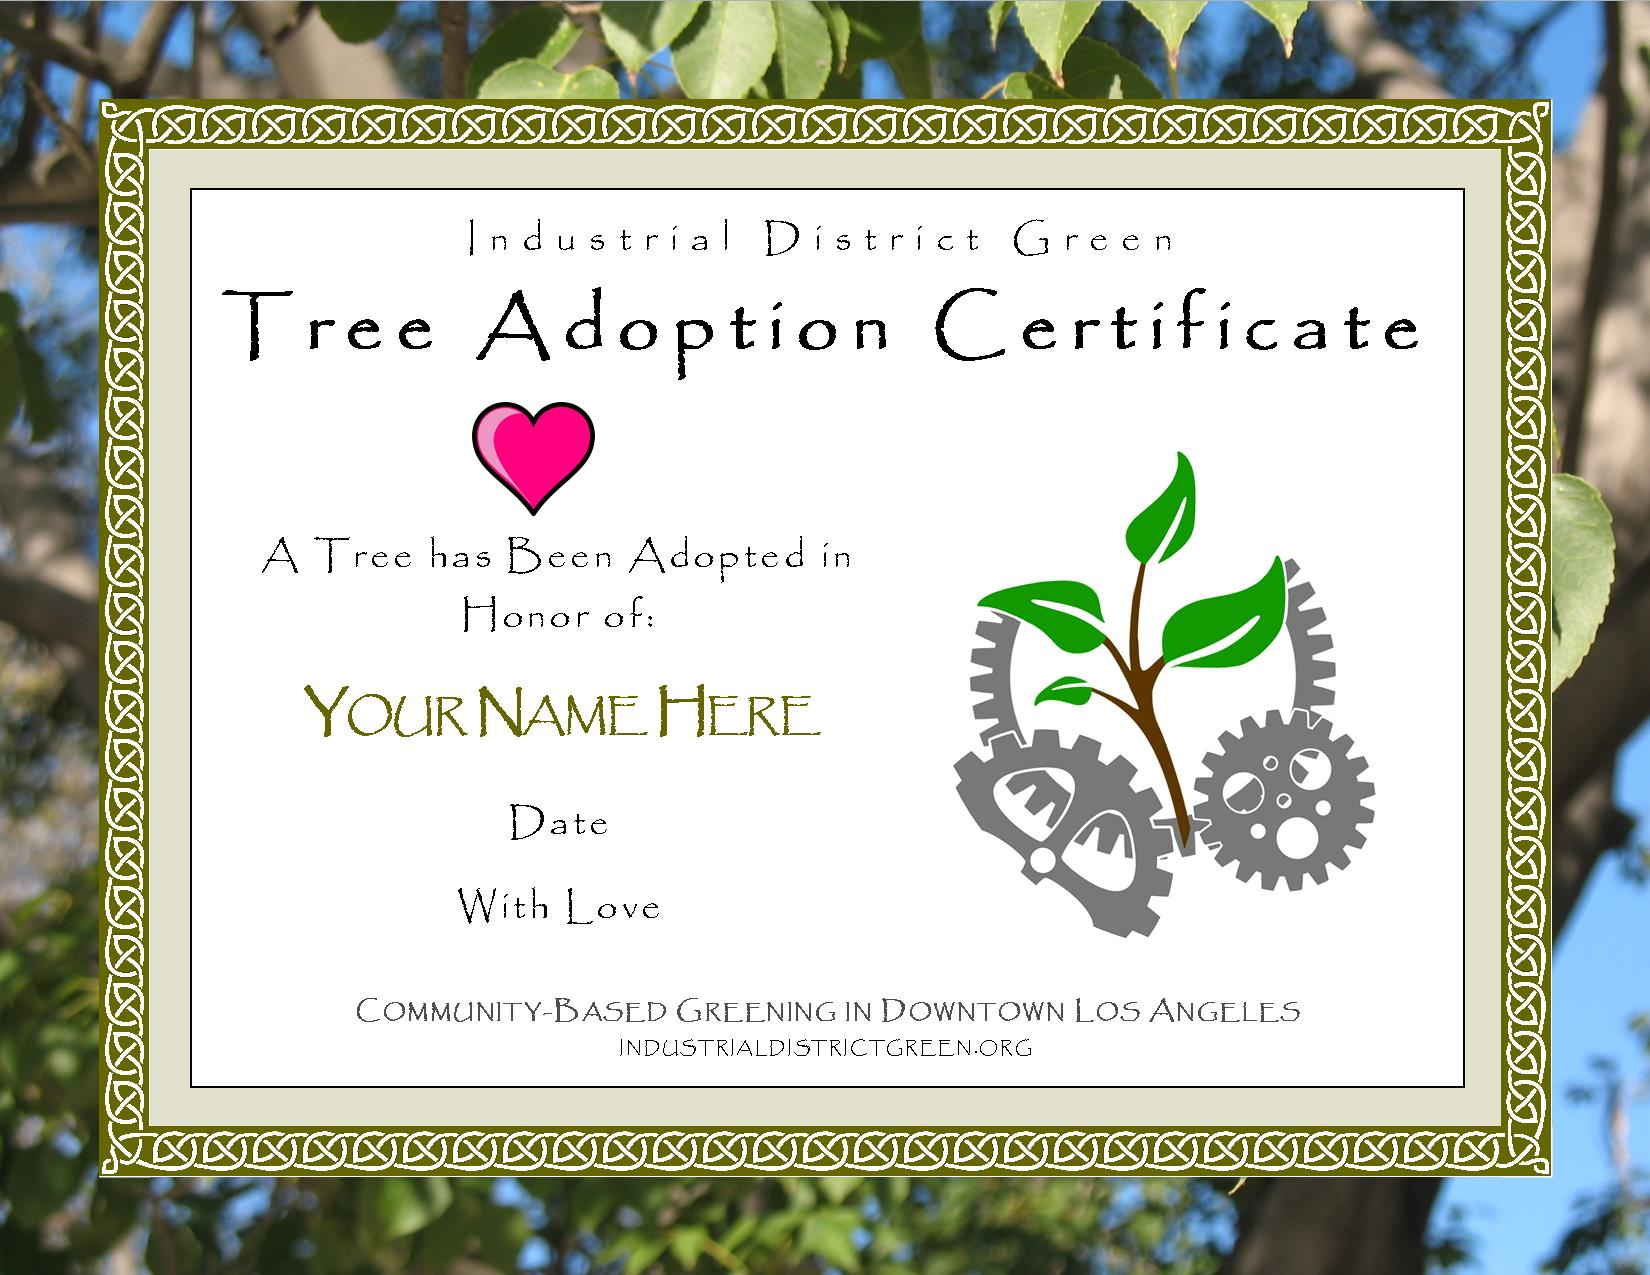 IDG_Tree_Adoption_Certificate.jpg